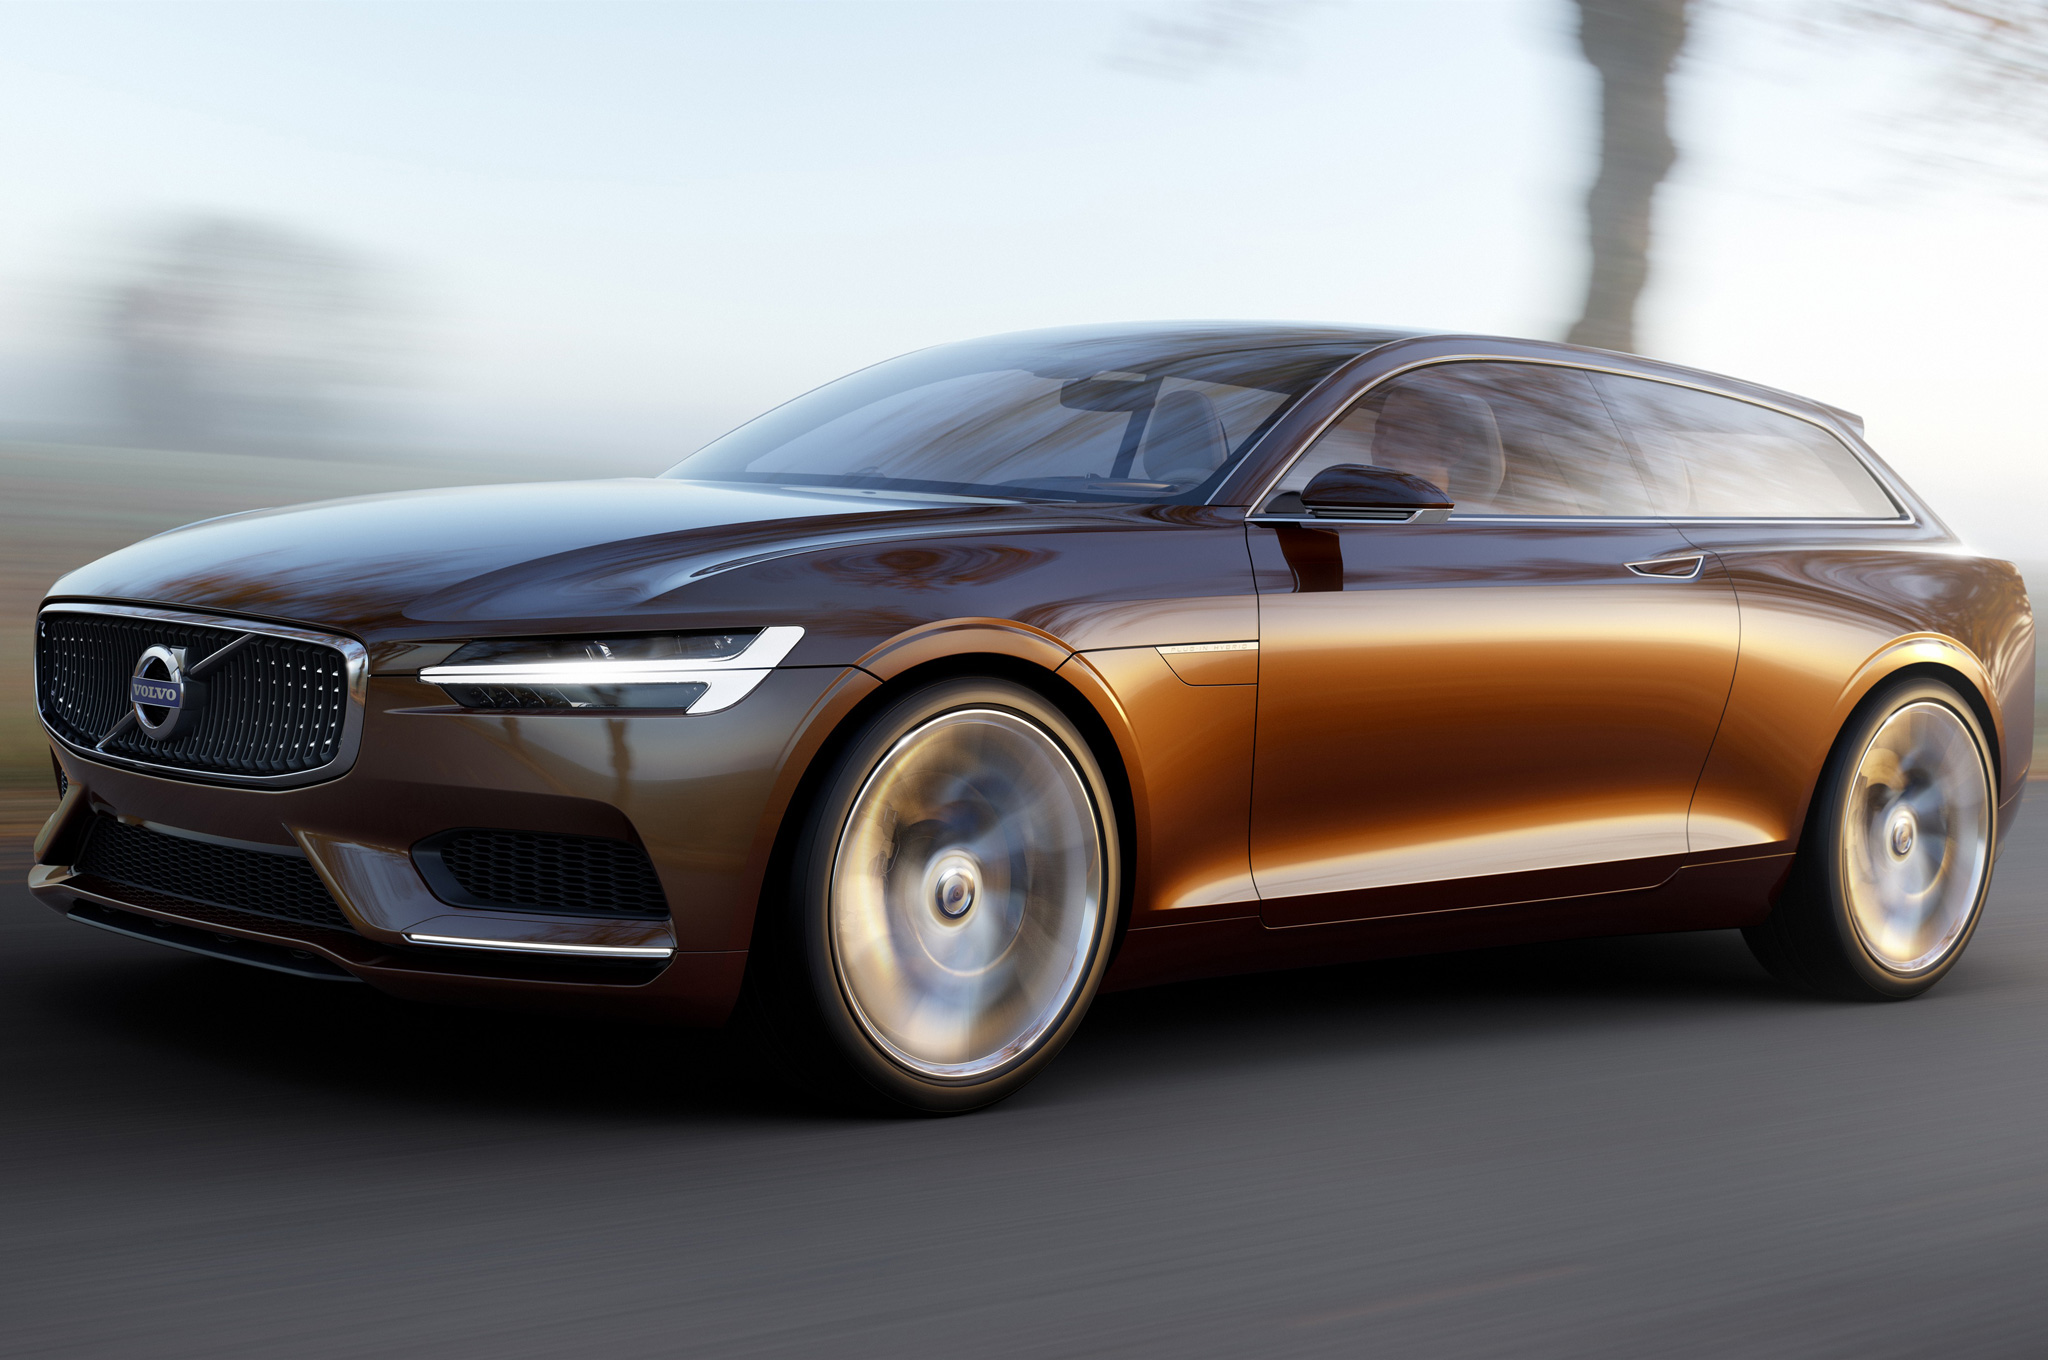 Volvo Concept Estate Officially Revealed, Looks Even Better in Hi-Res